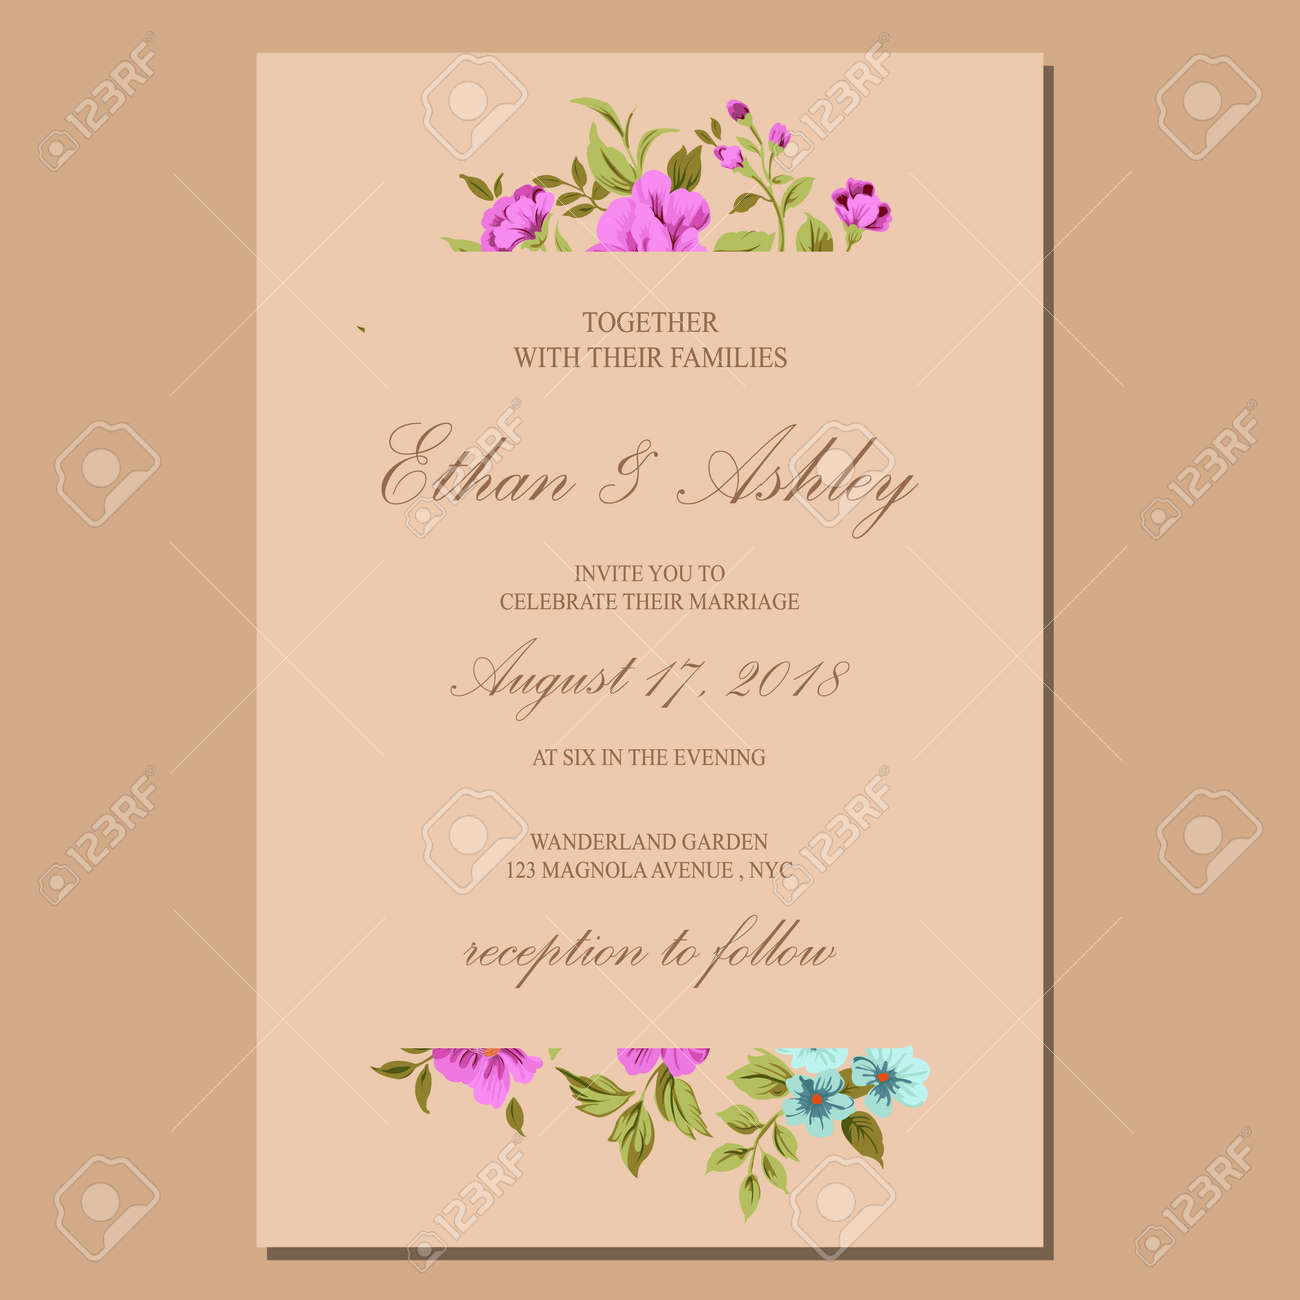 wedding invitation with floral pattern frame - 156373070